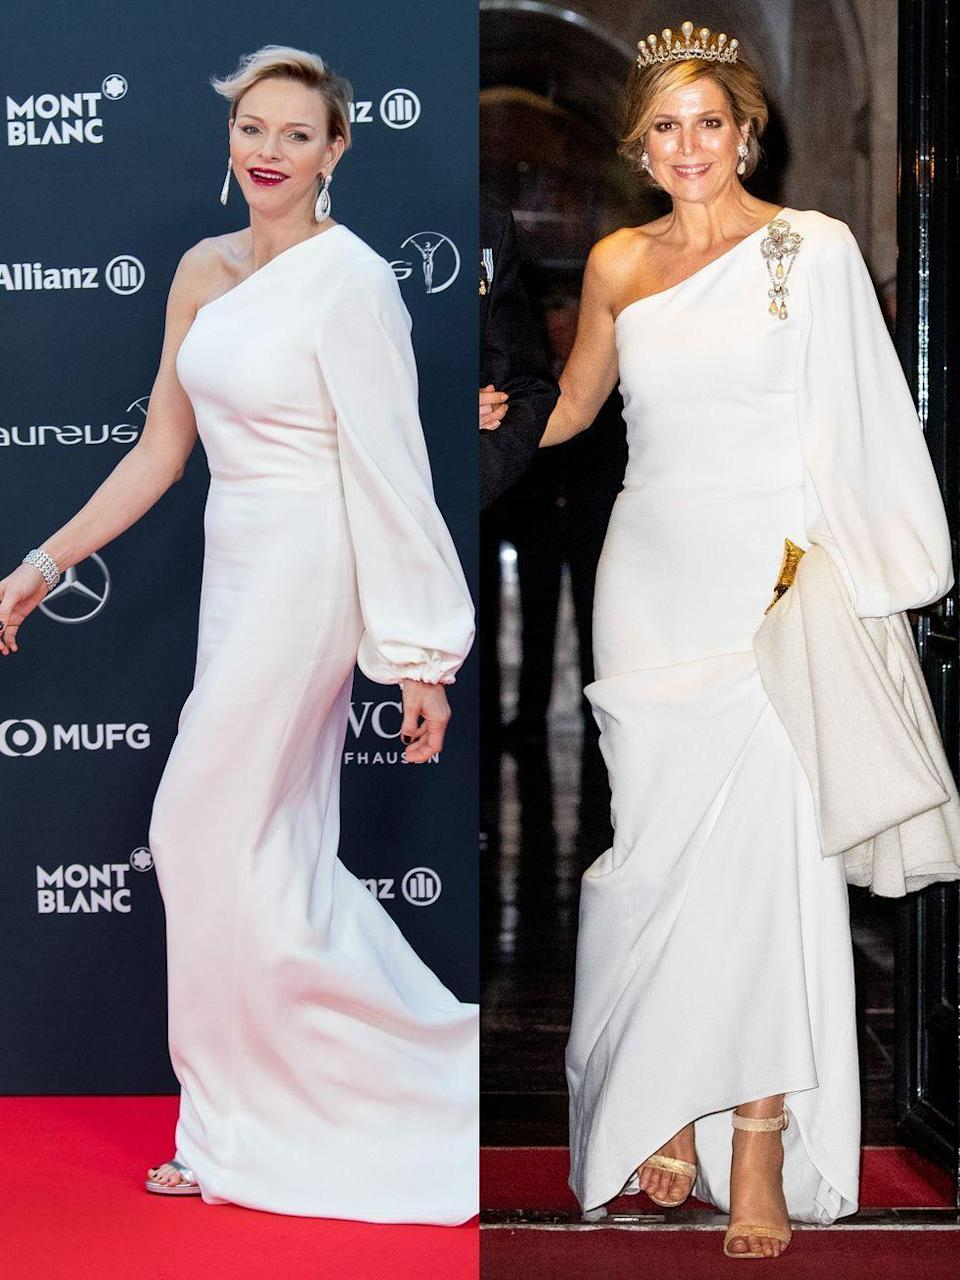 <p>Princess Charlene of Monaco walks on the red carpet before the 2018 Laureus World Sports Awards ceremony at the Sporting Monte-Carlo complex in Monaco on February 27, 2018.</p><p><br>Queen Maxima of The Netherlands leaves the Royal Palace after the annual gala diner for the Diplomatic Corps on April 09, 2019 in Amsterdam, Netherlands.</p>